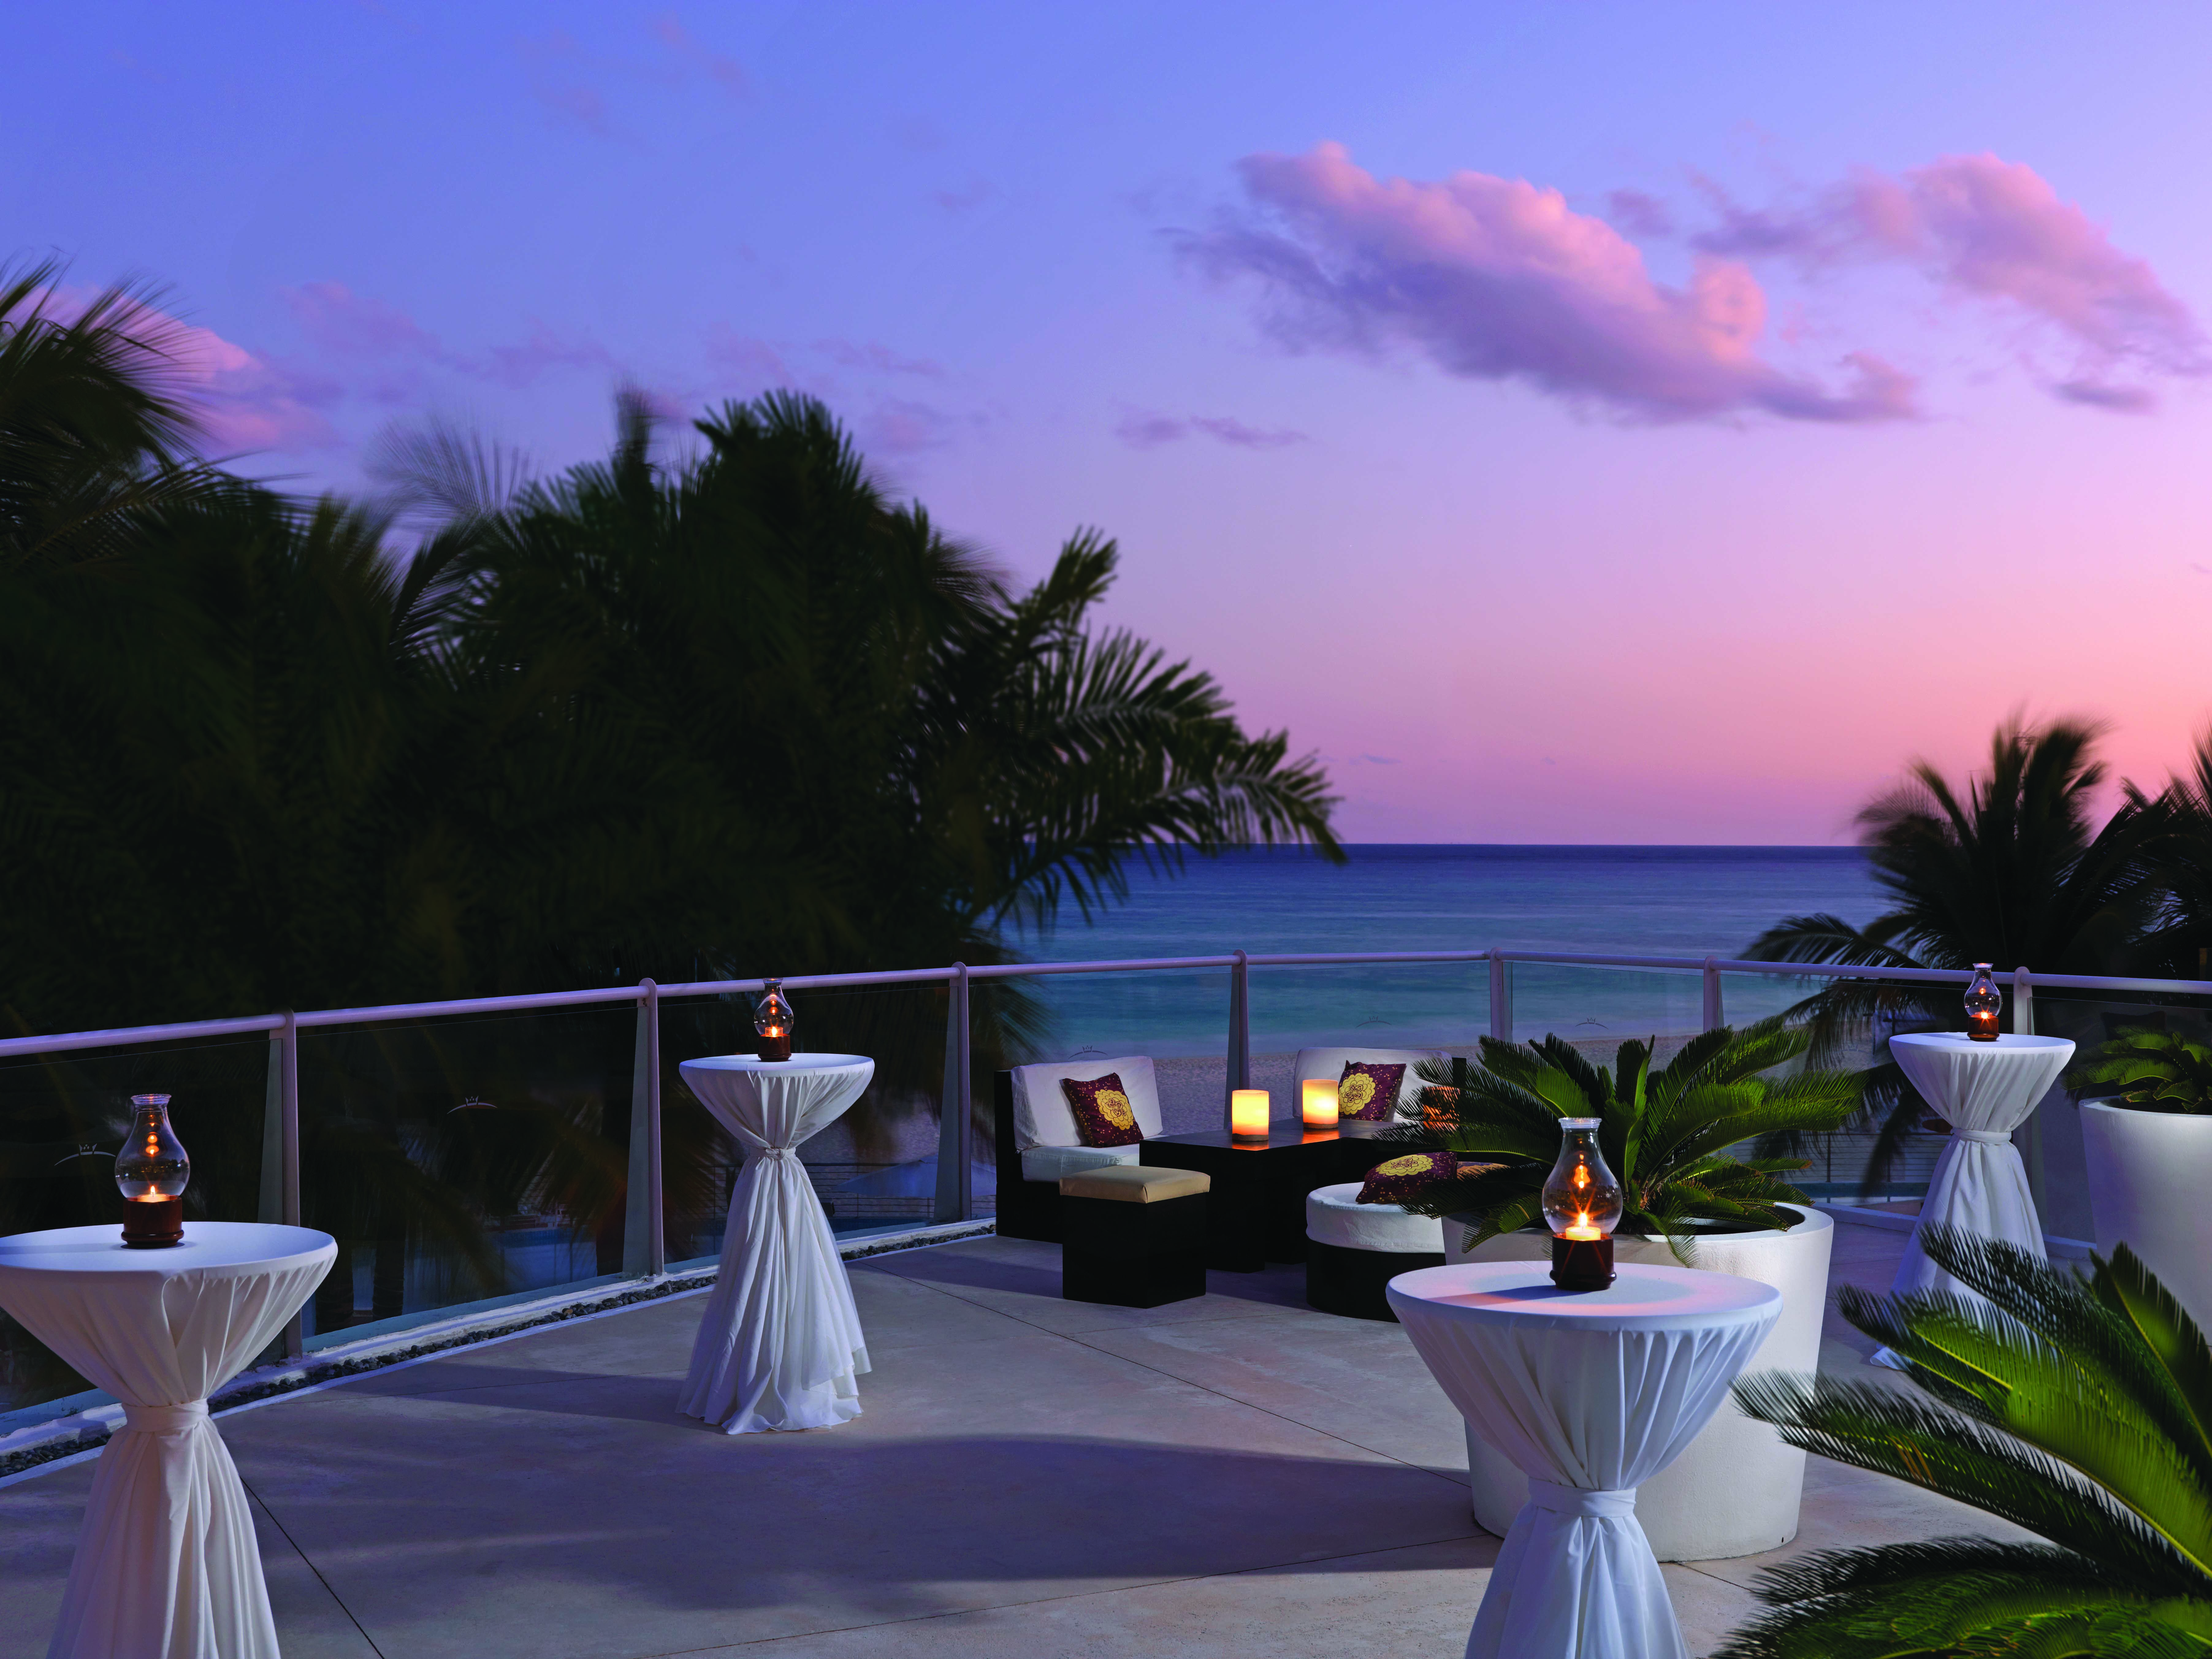 Private events at Playacar Palace weddings